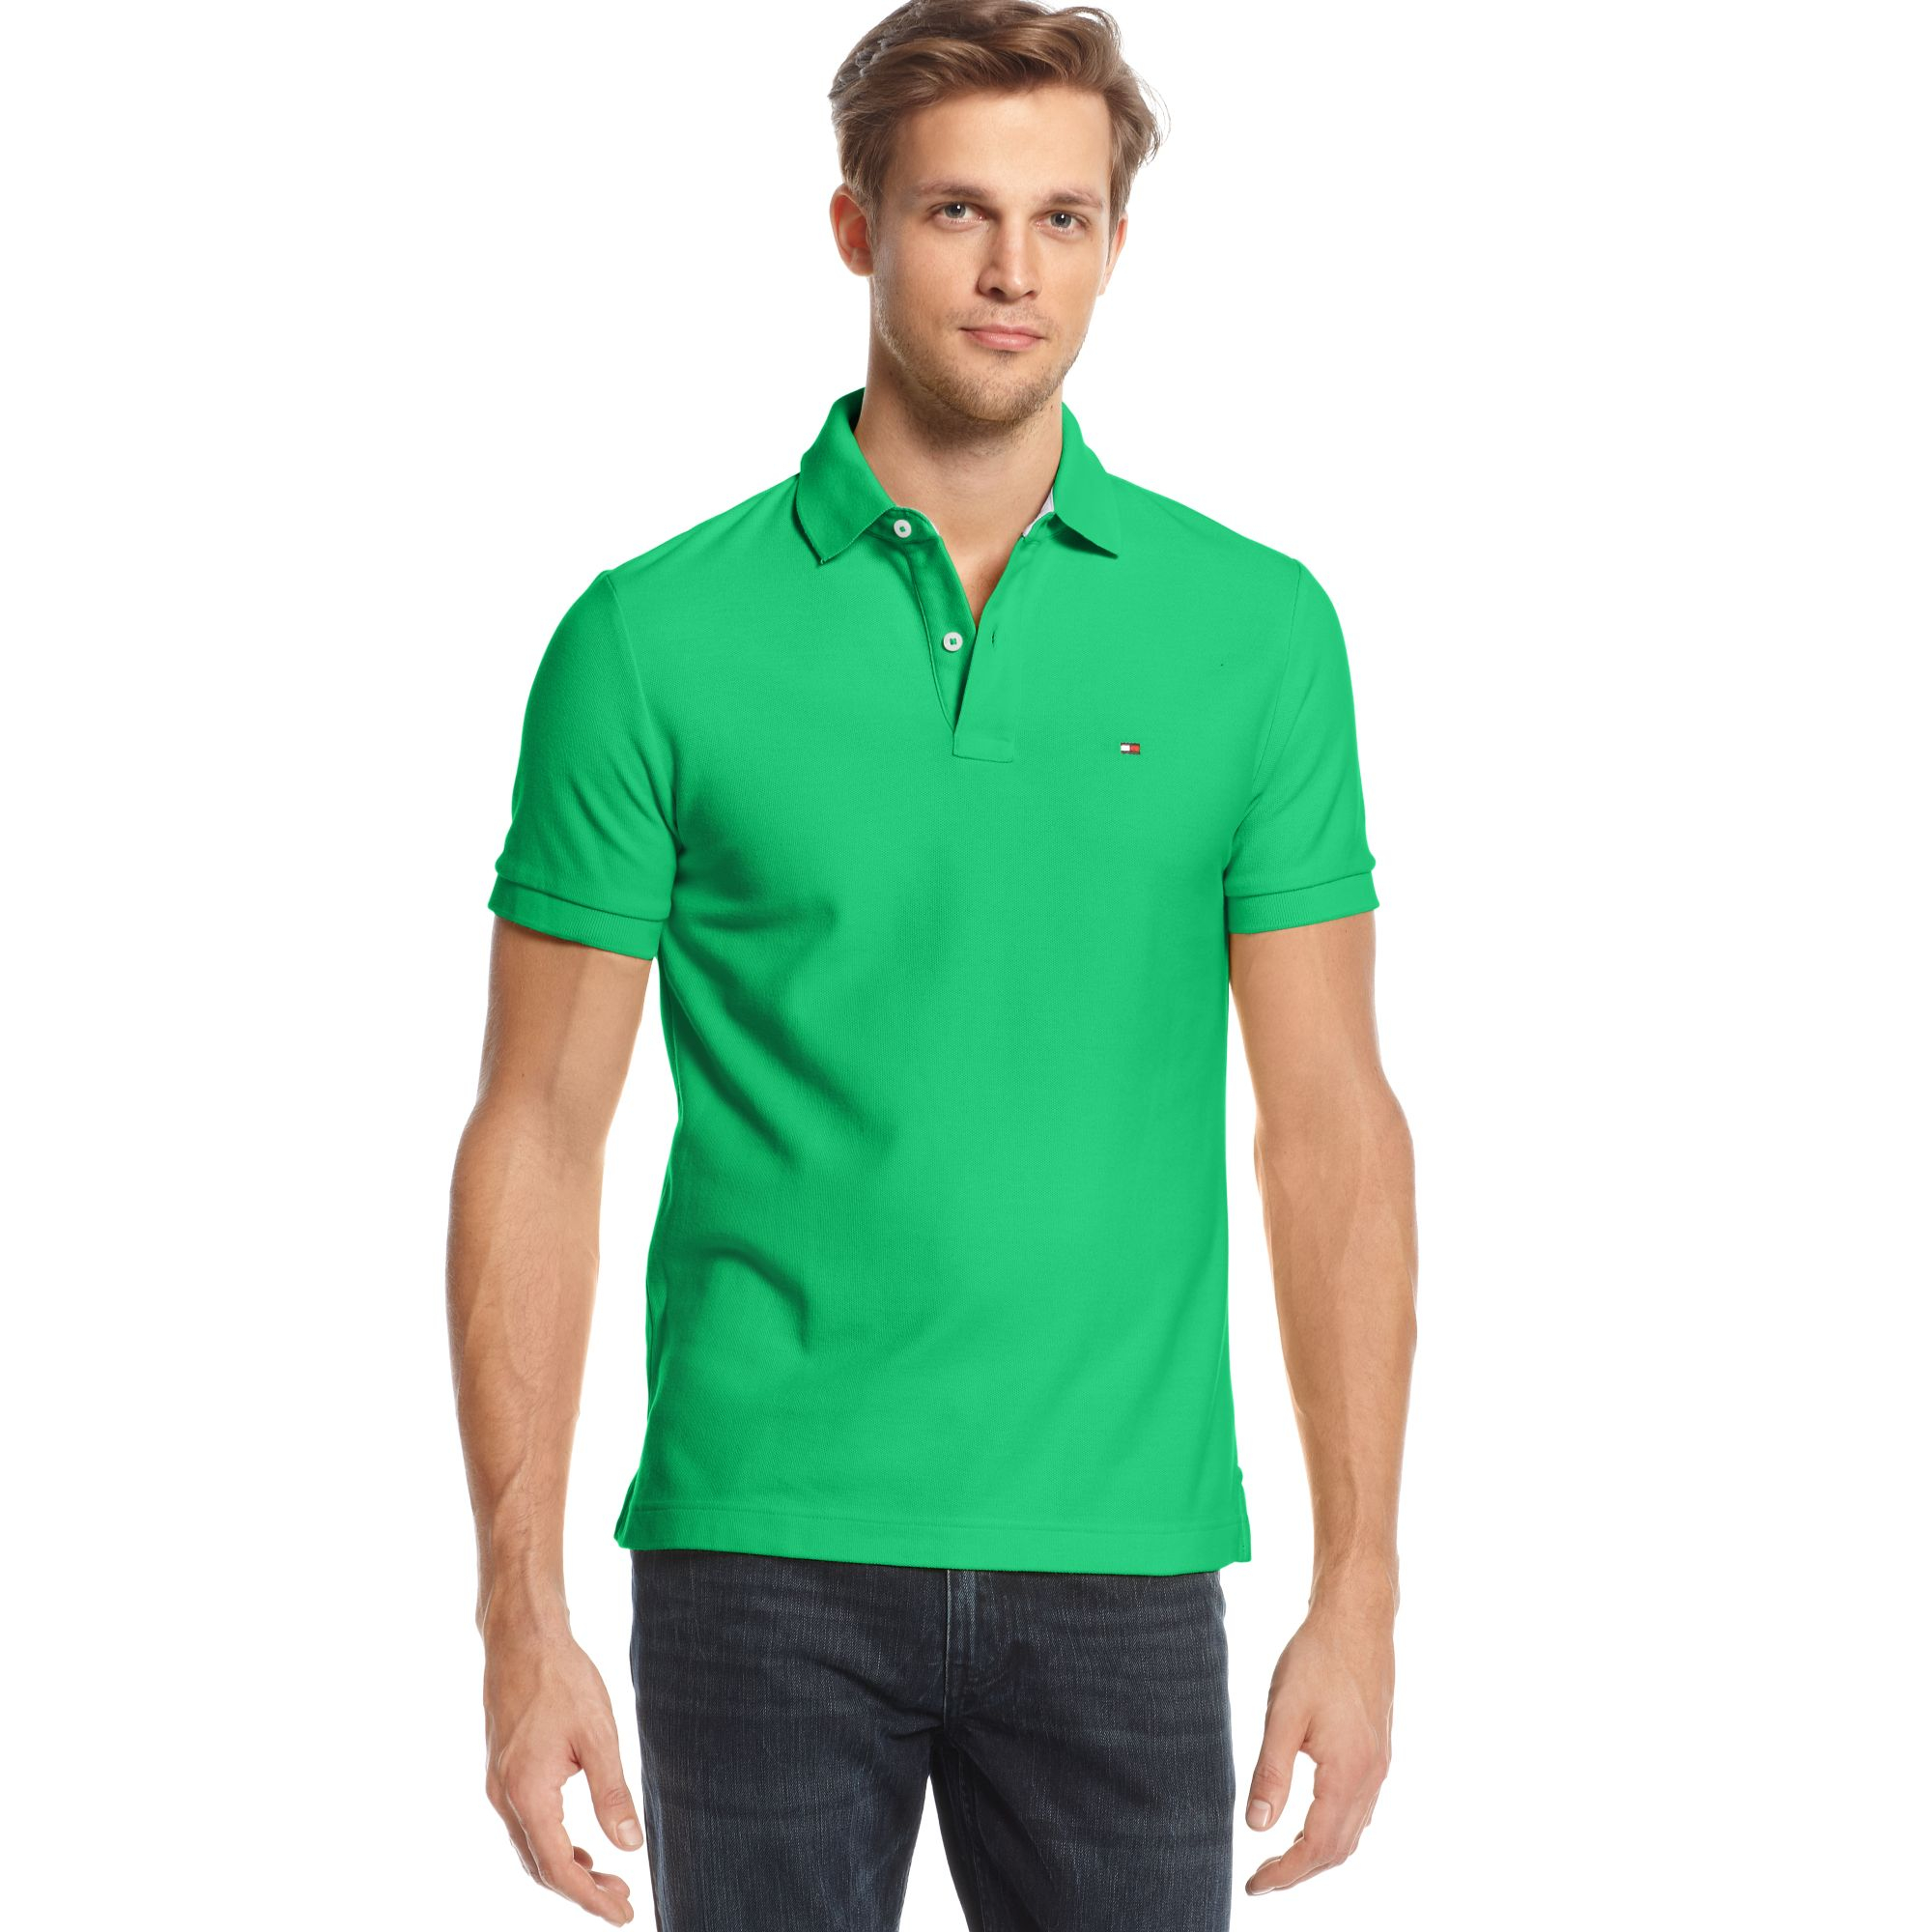 tommy hilfiger slim fit ivy polo shirt in green for men brando green. Black Bedroom Furniture Sets. Home Design Ideas